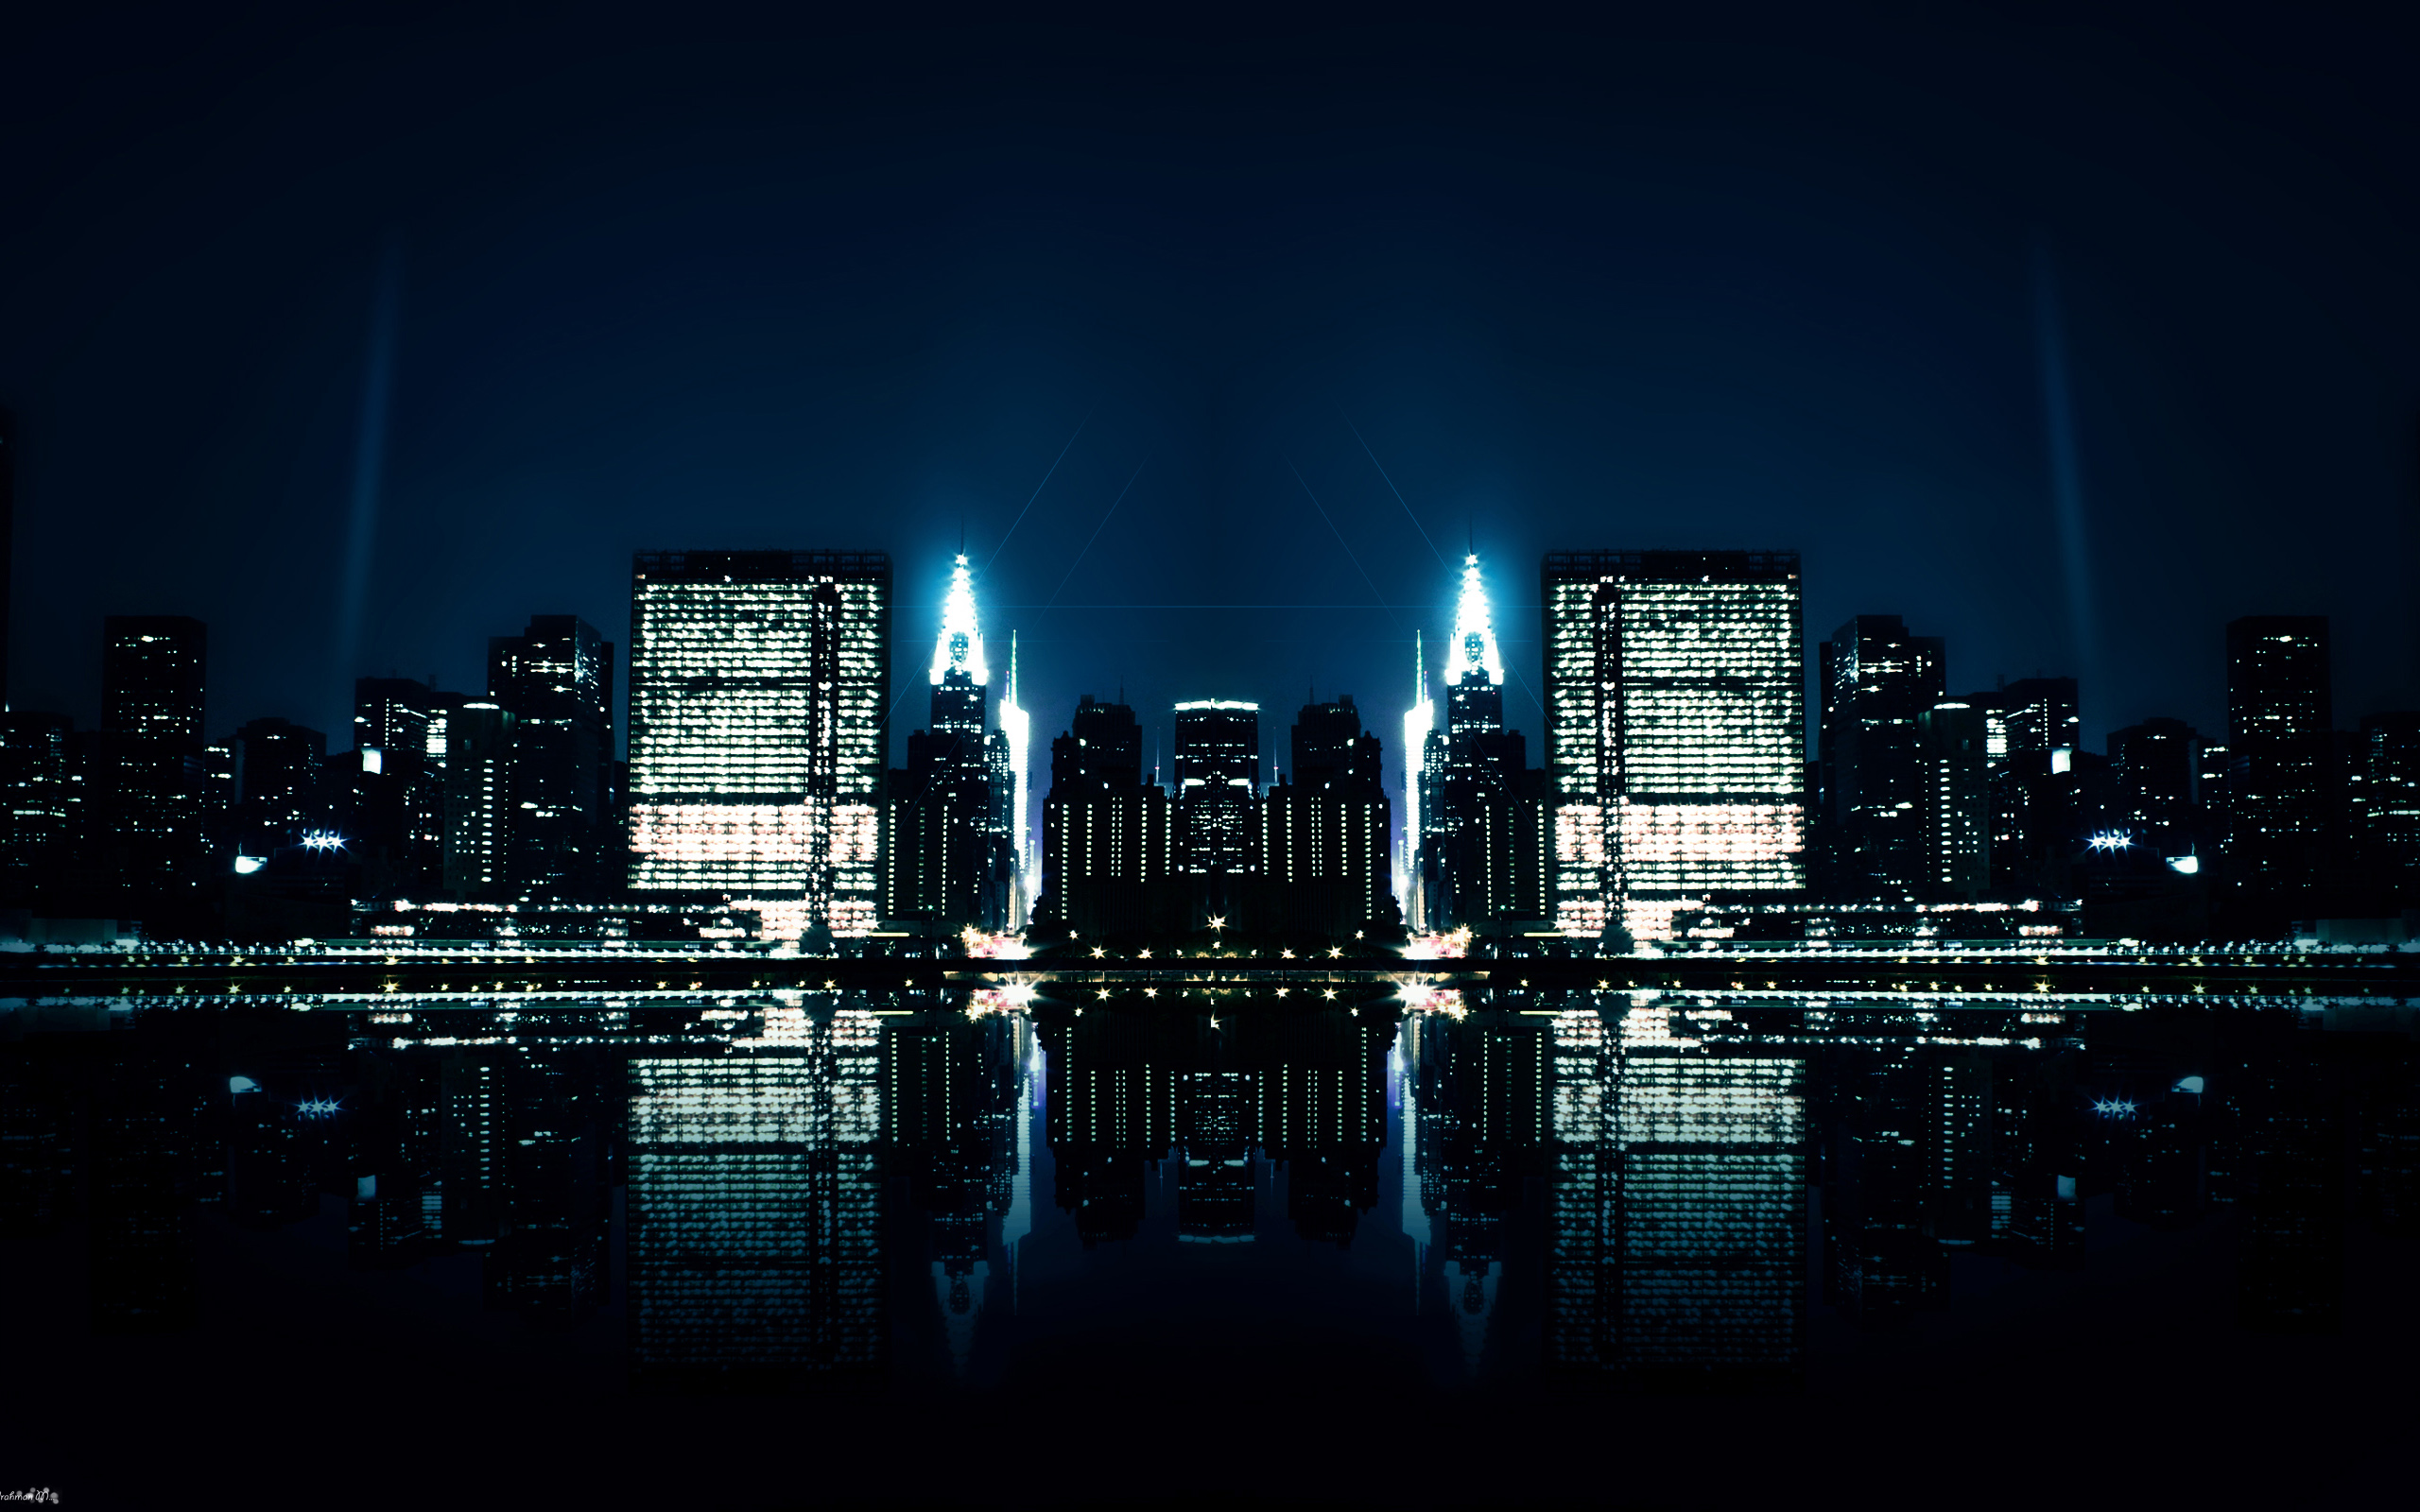 Night City Wallpaper For Desktop | Cars Wallpapers,Pictures,Images ...